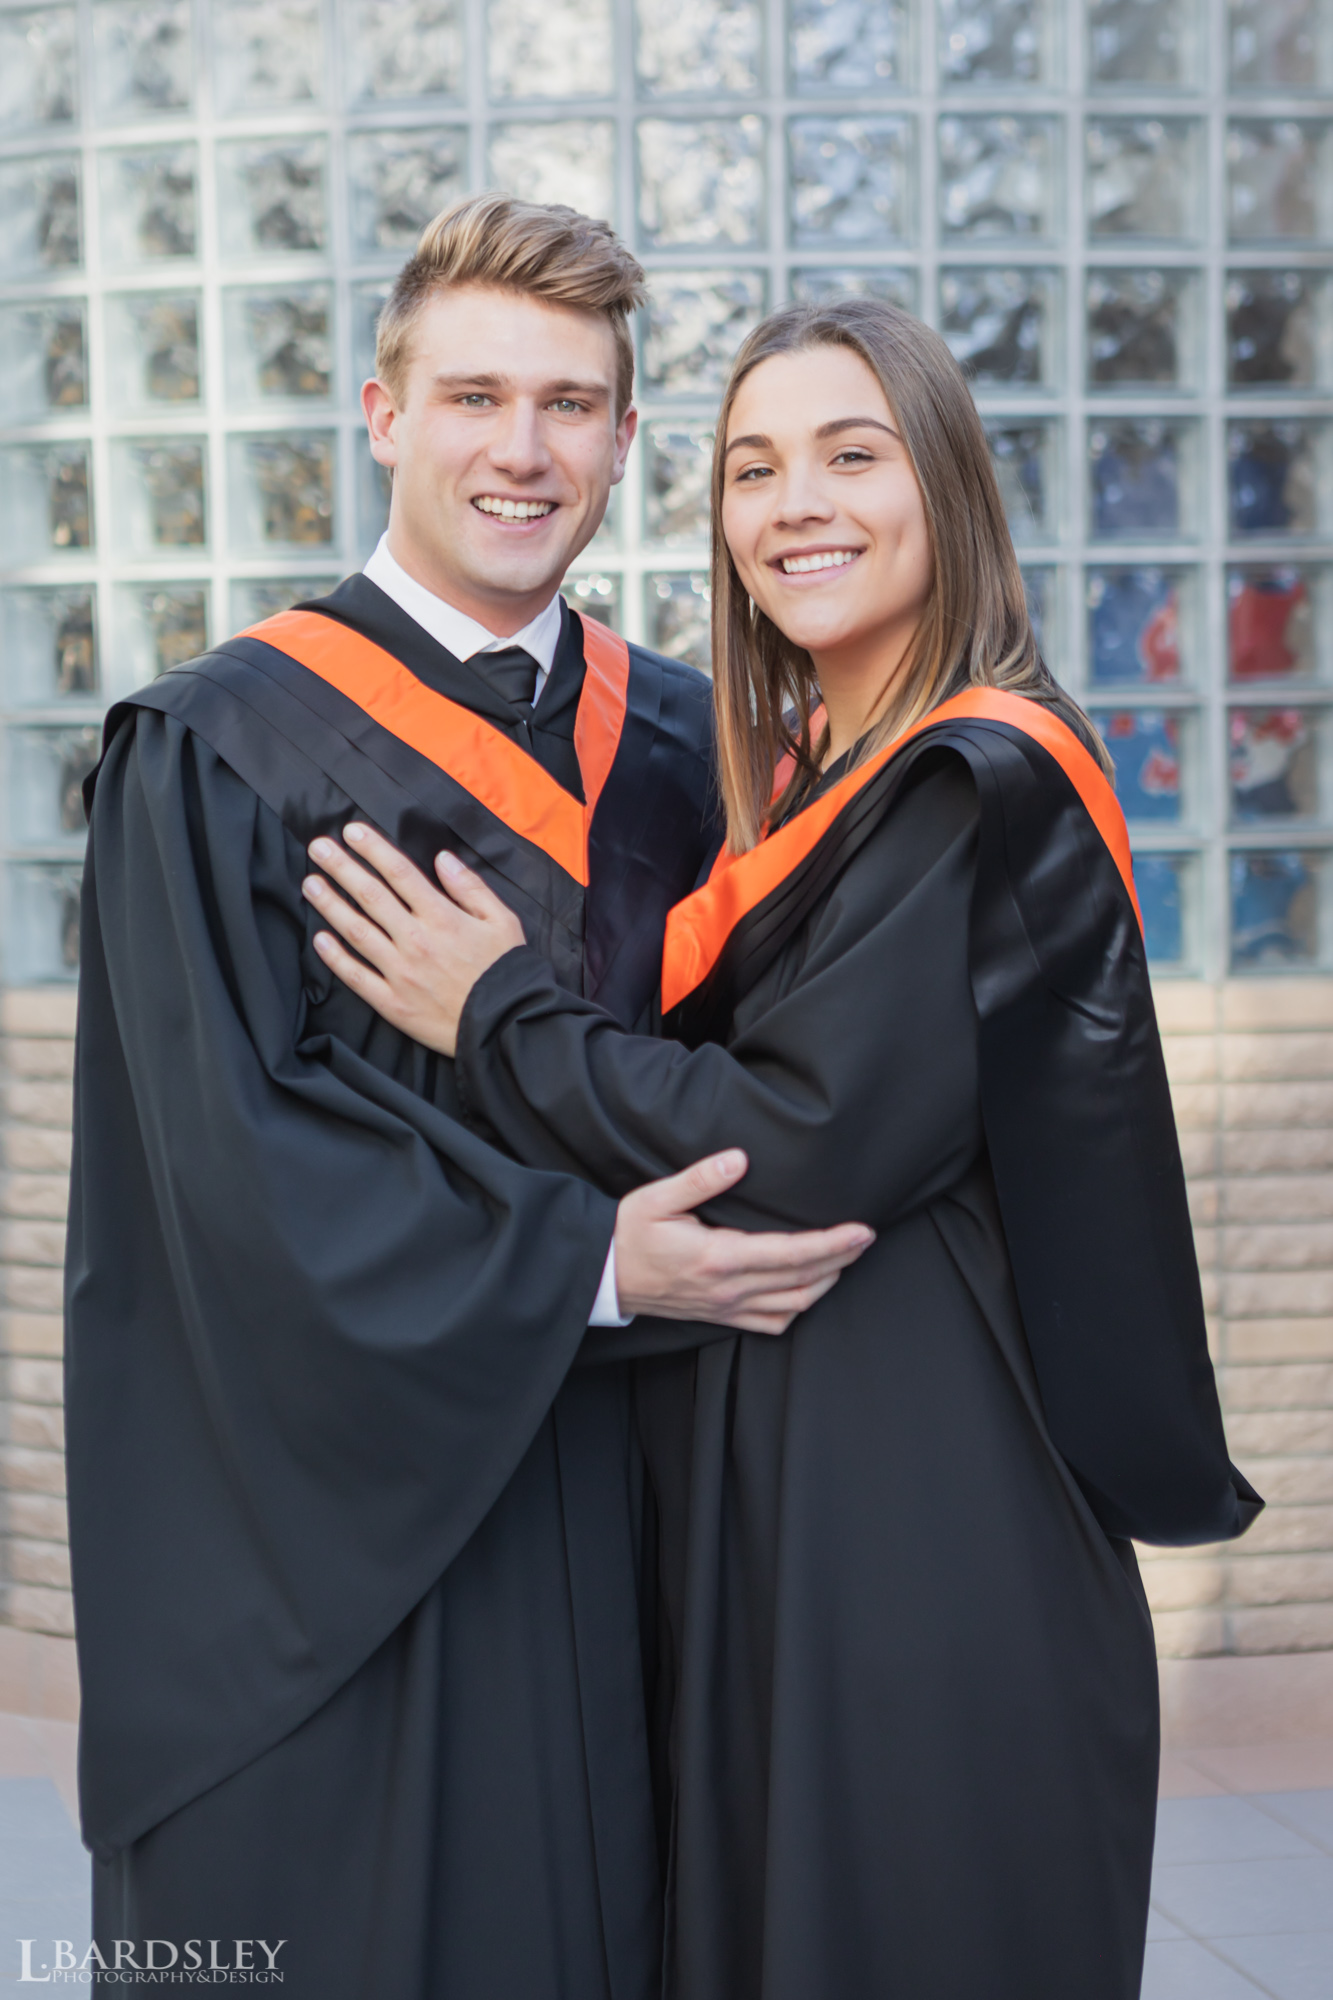 Graduation couple